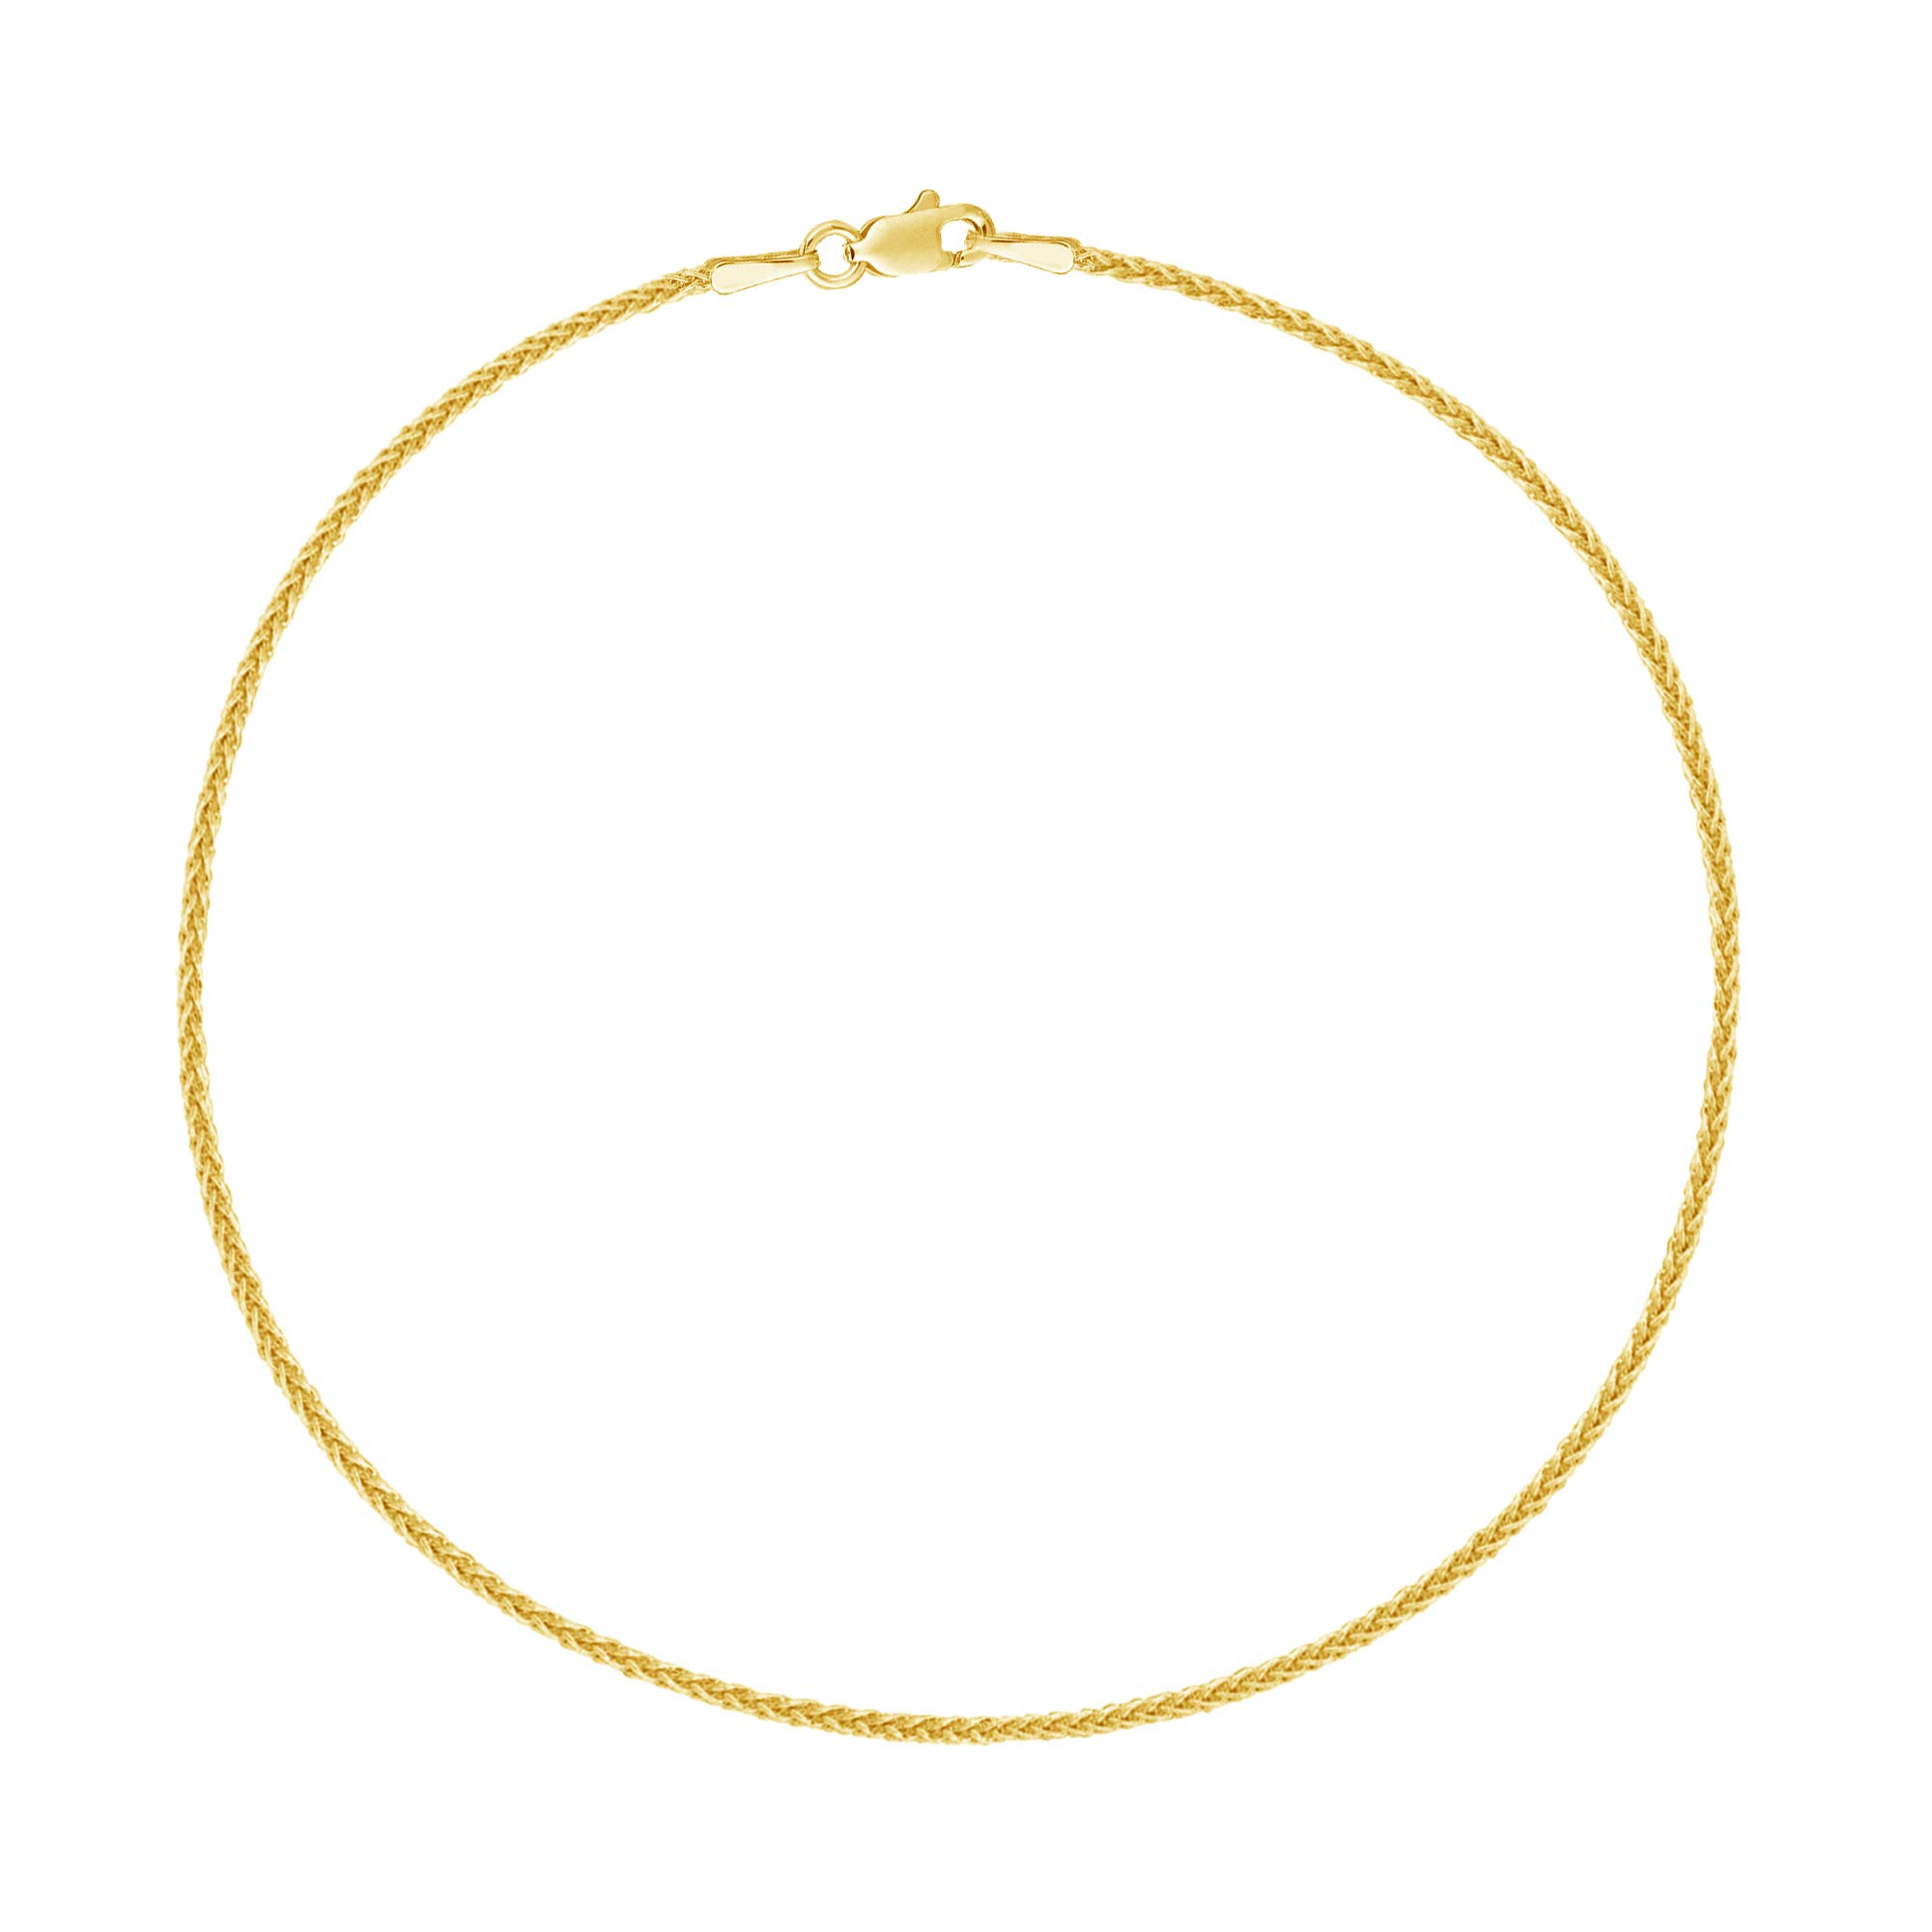 14k Real Yellow Gold Wheat Chain Anklet Lobster Lock Ankle Anklet 1.1mm 10 Inches